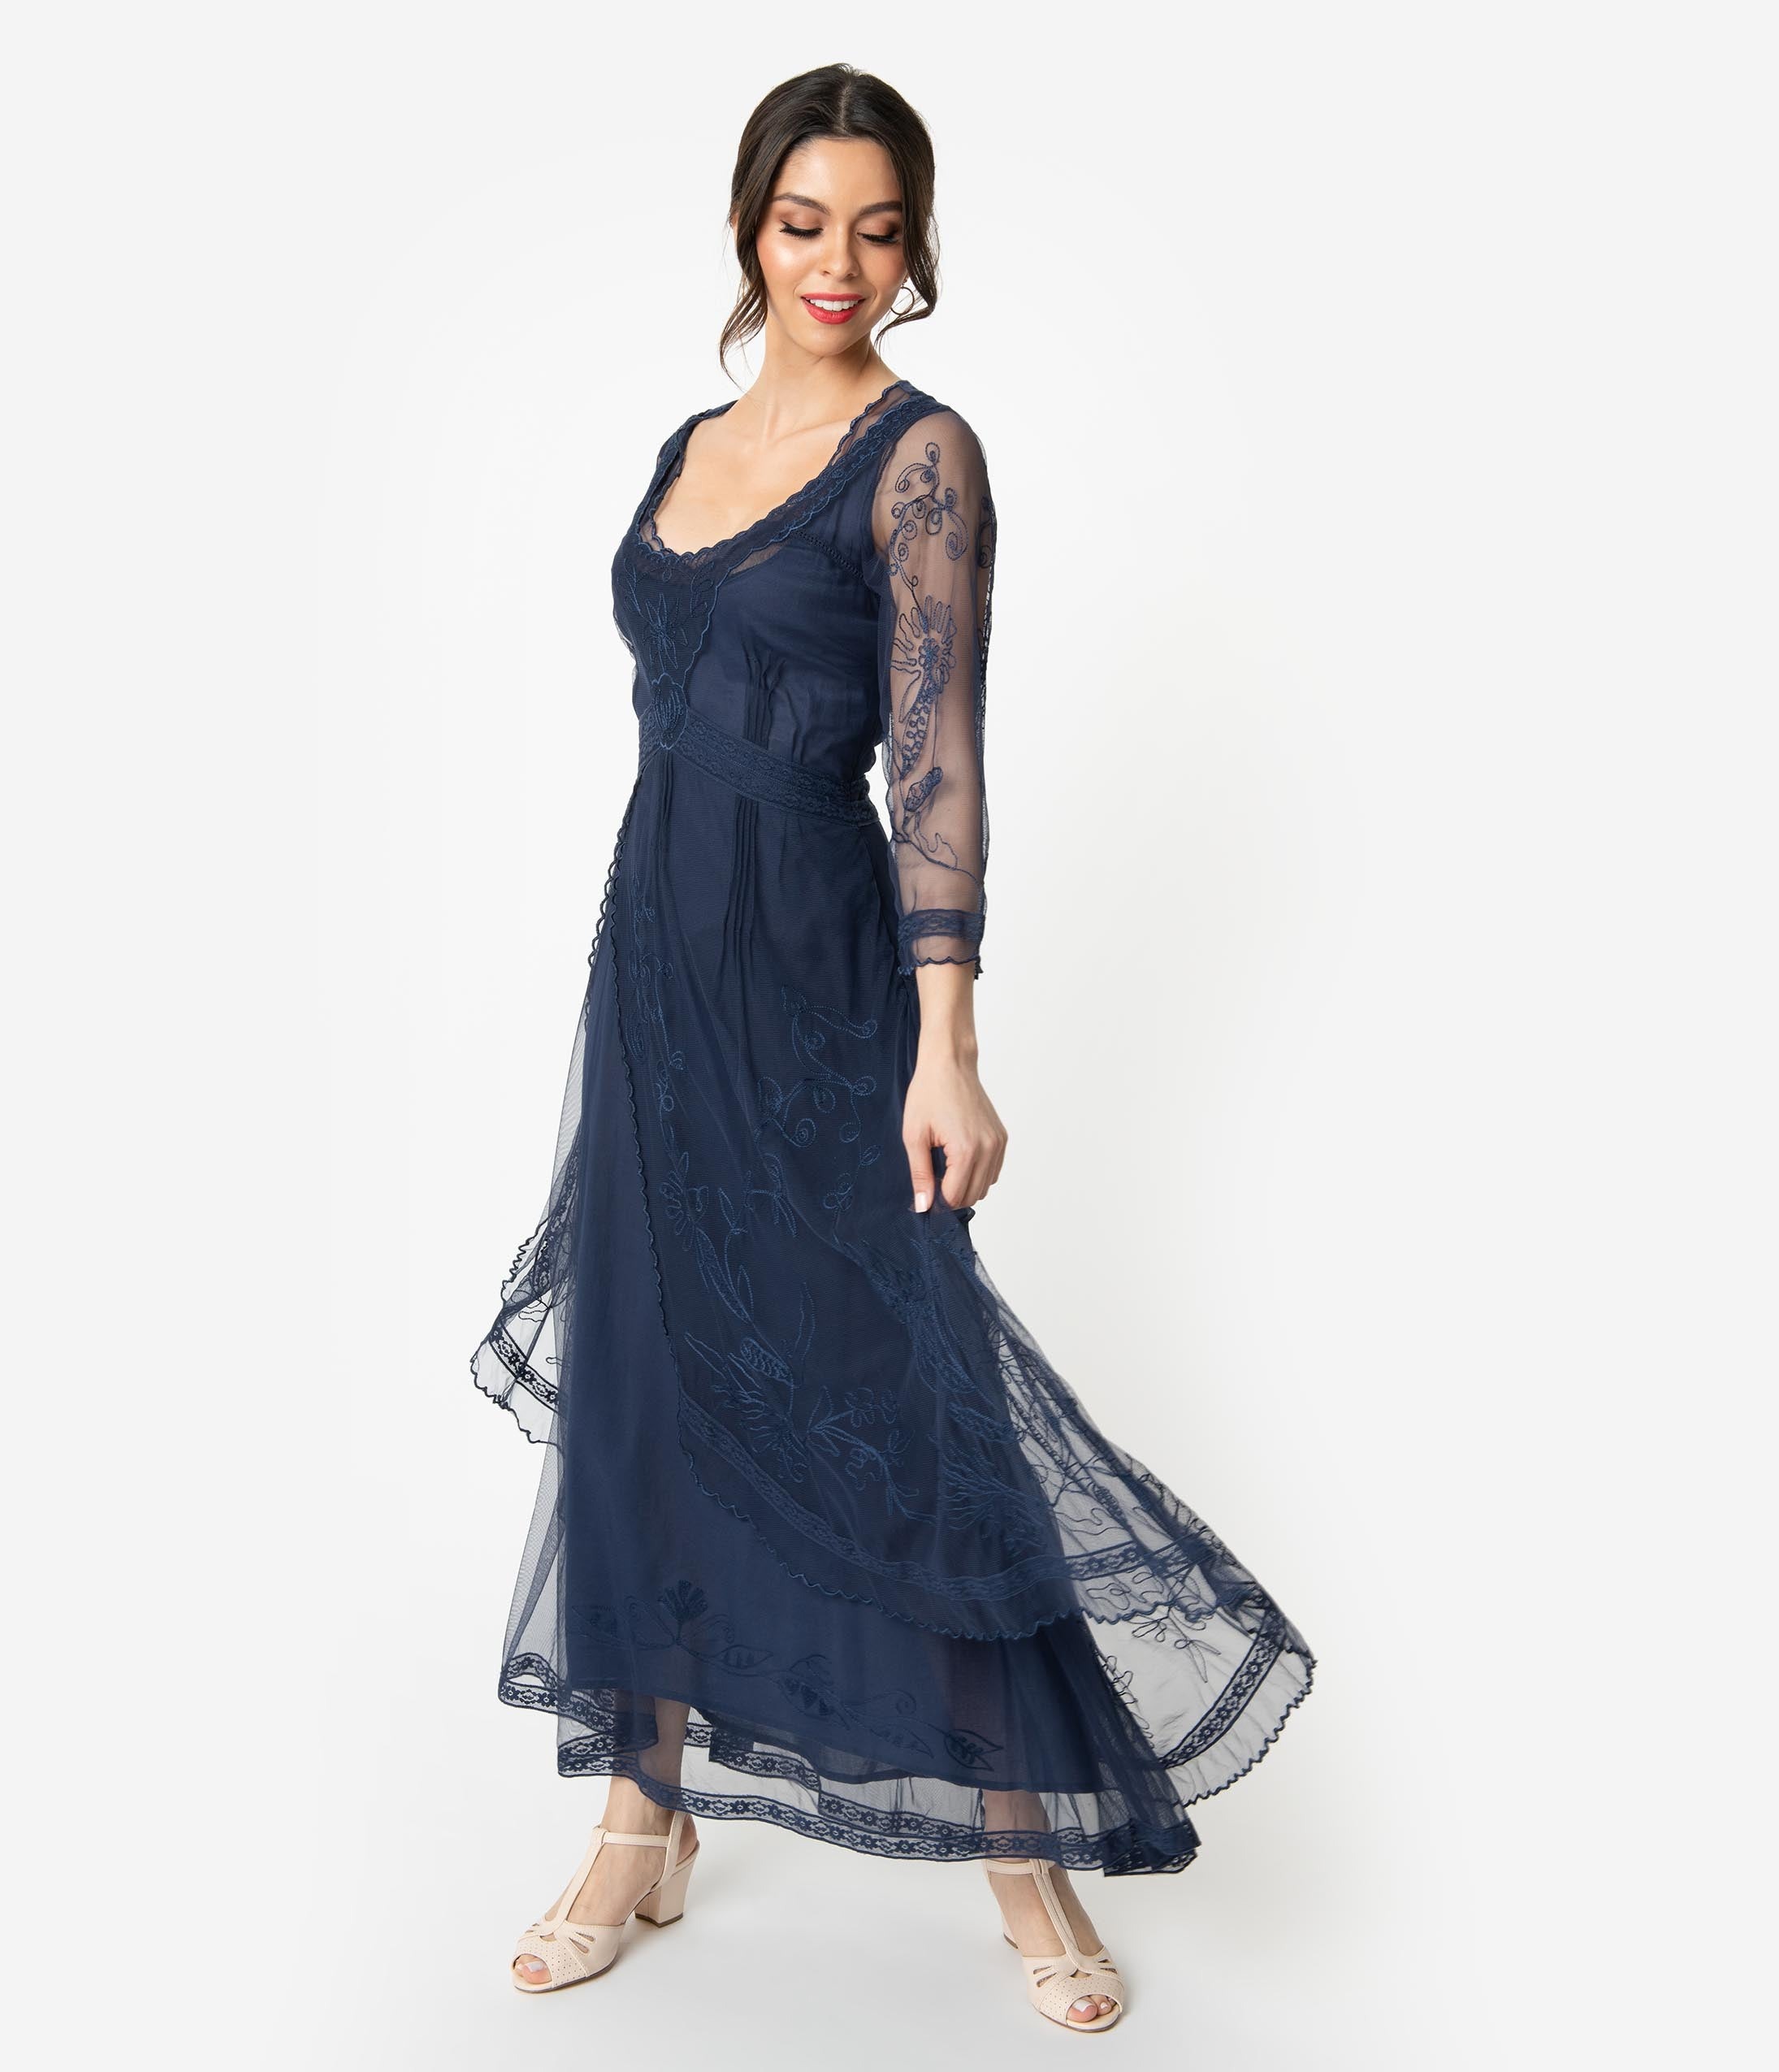 1920s Evening Dresses & Formal Gowns Royal Blue Embroidered Tulle Downton Abbey Edwardian Tea Party Flapper Dress $274.00 AT vintagedancer.com